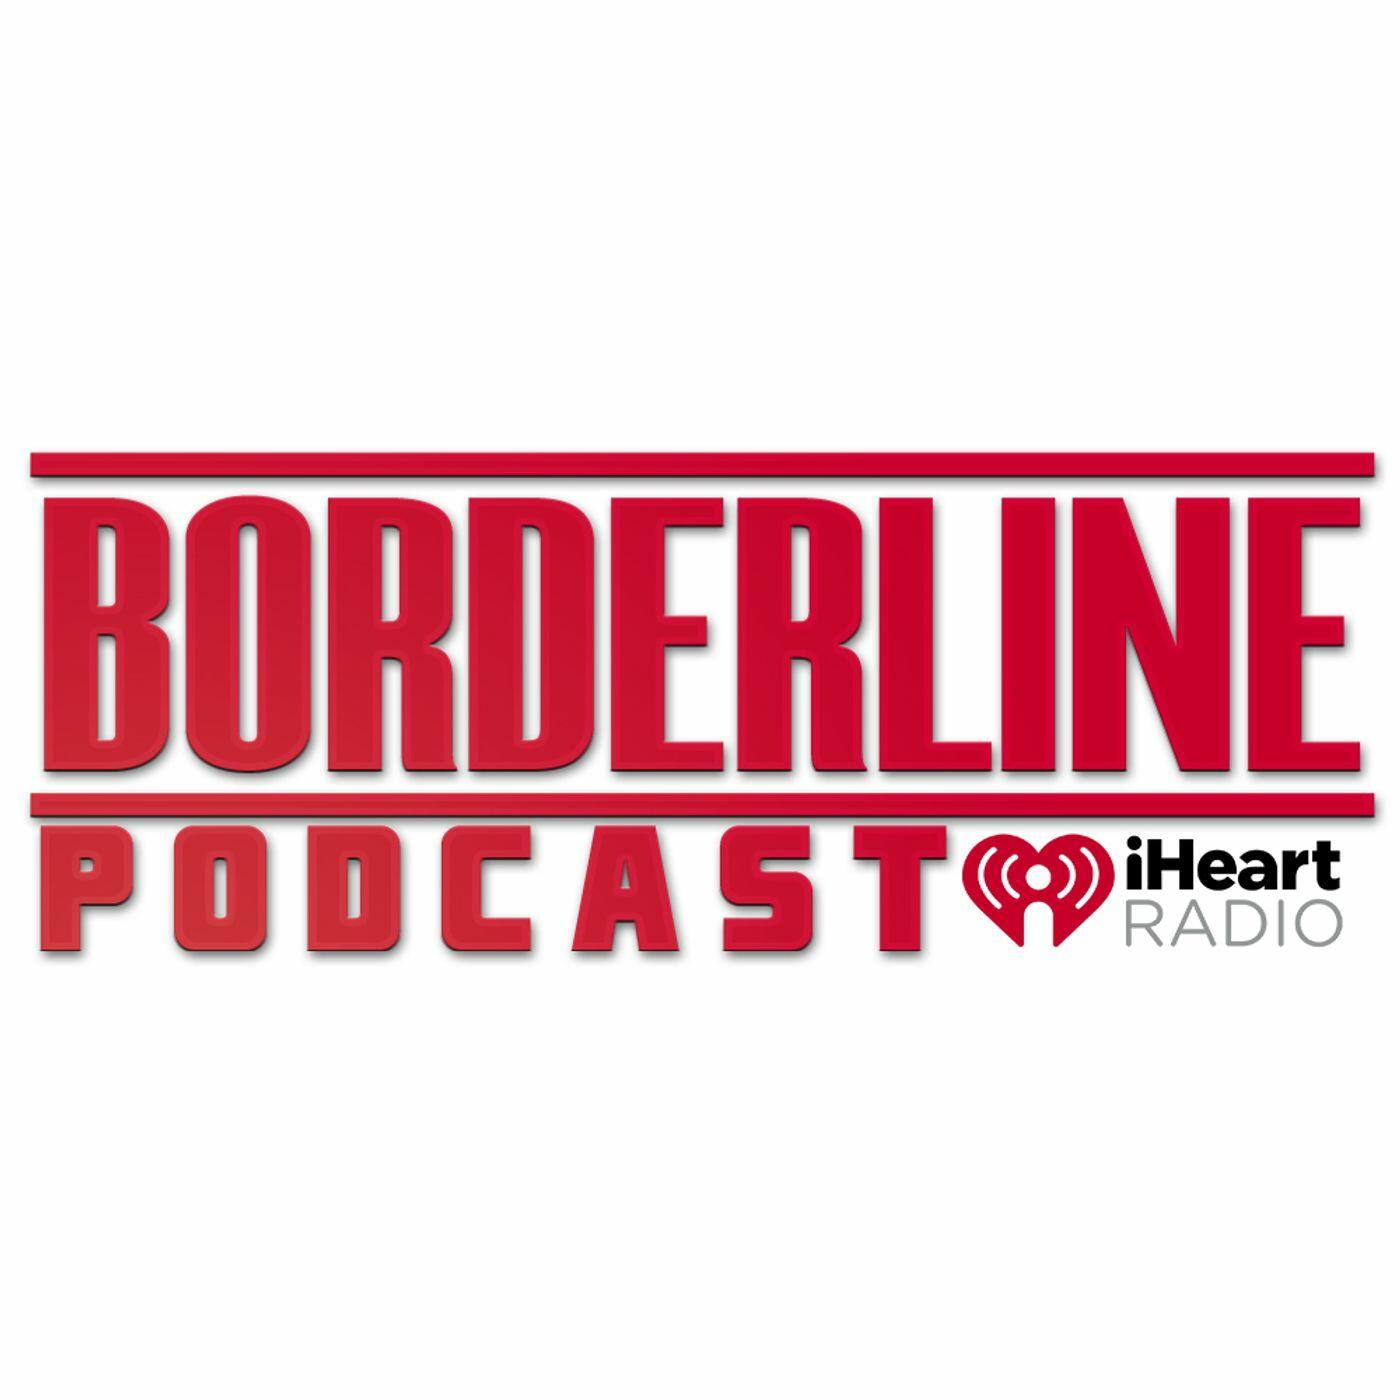 BORDERLINE PODCAST